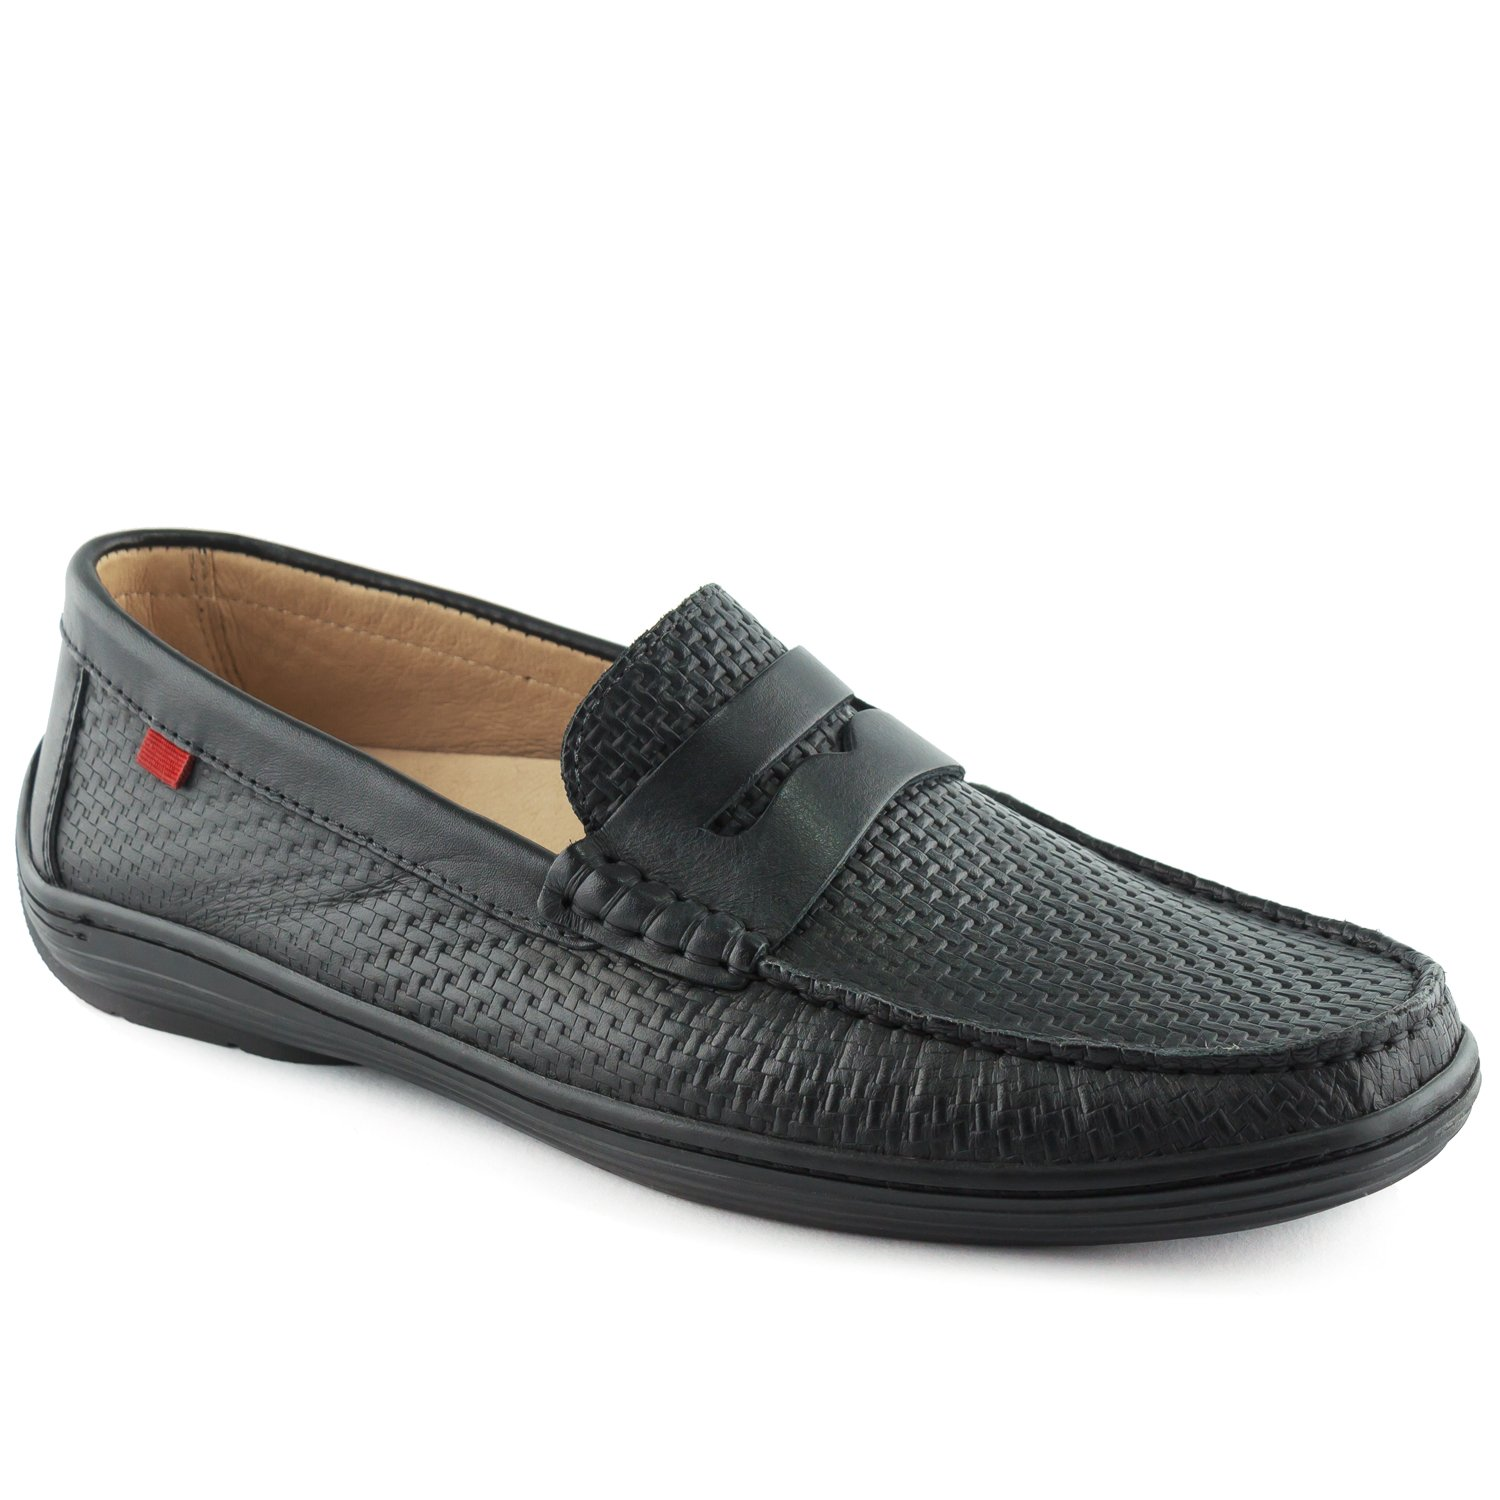 Black Basket Leather Marc Joseph New York Men's Mens Genuine Leather Atlantic Loafer Driving Style Loafers